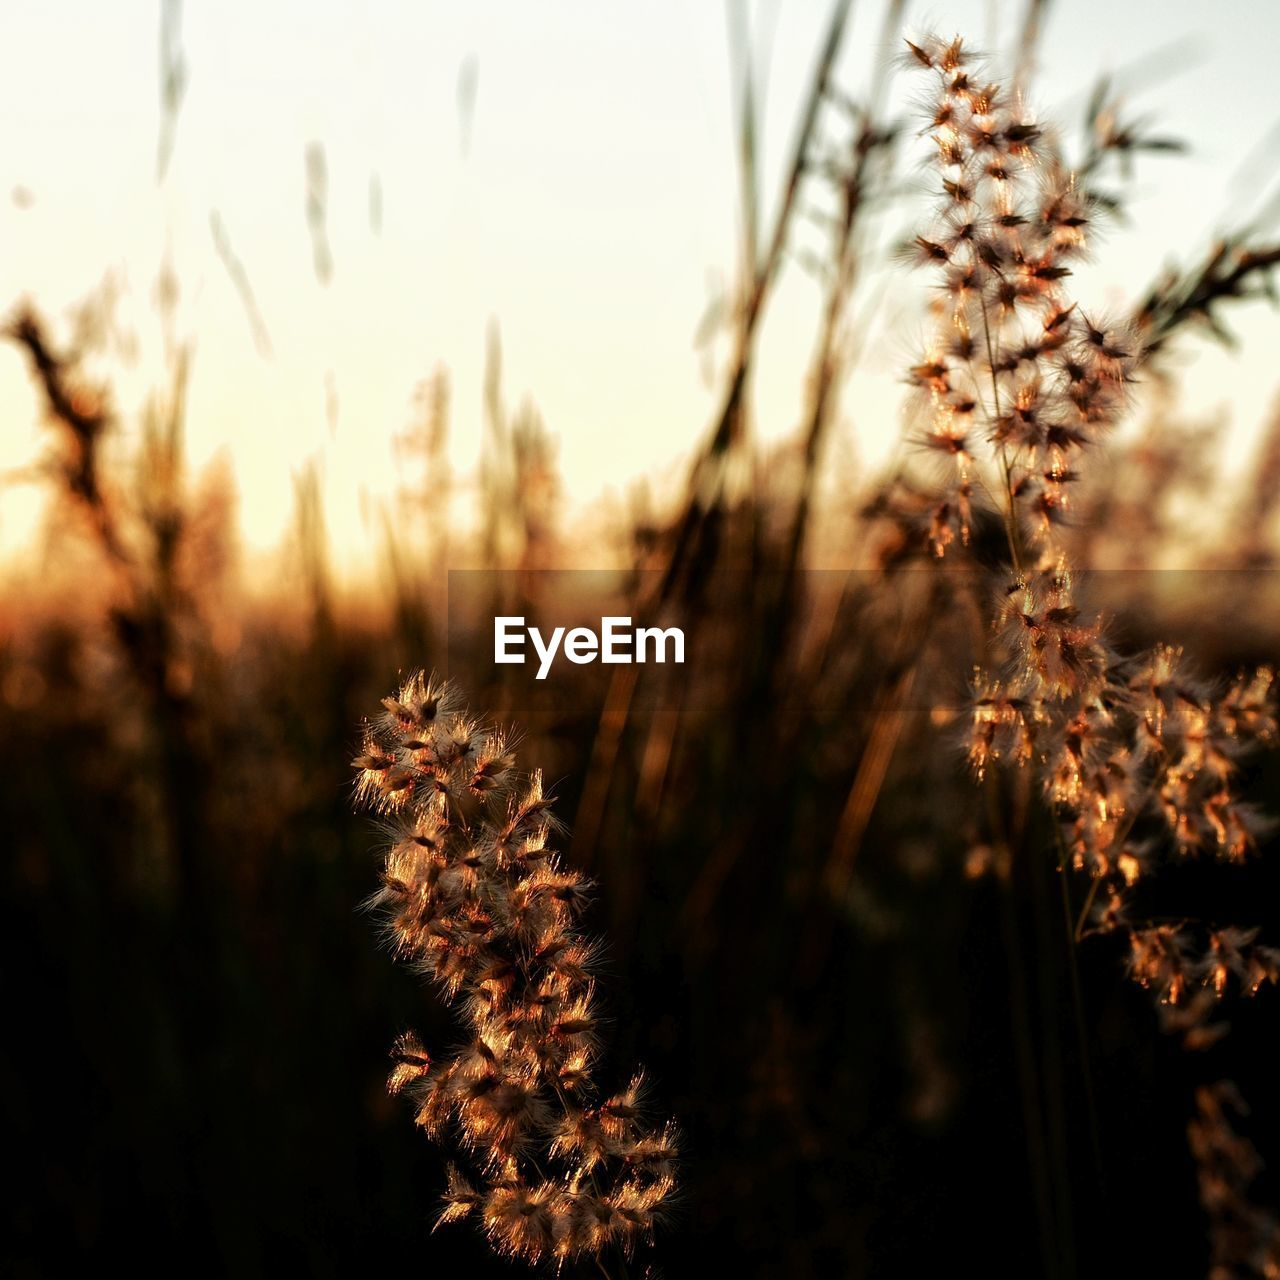 plant, growth, nature, beauty in nature, close-up, sunset, tranquility, no people, focus on foreground, field, selective focus, sky, land, outdoors, sunlight, vulnerability, fragility, day, freshness, flower